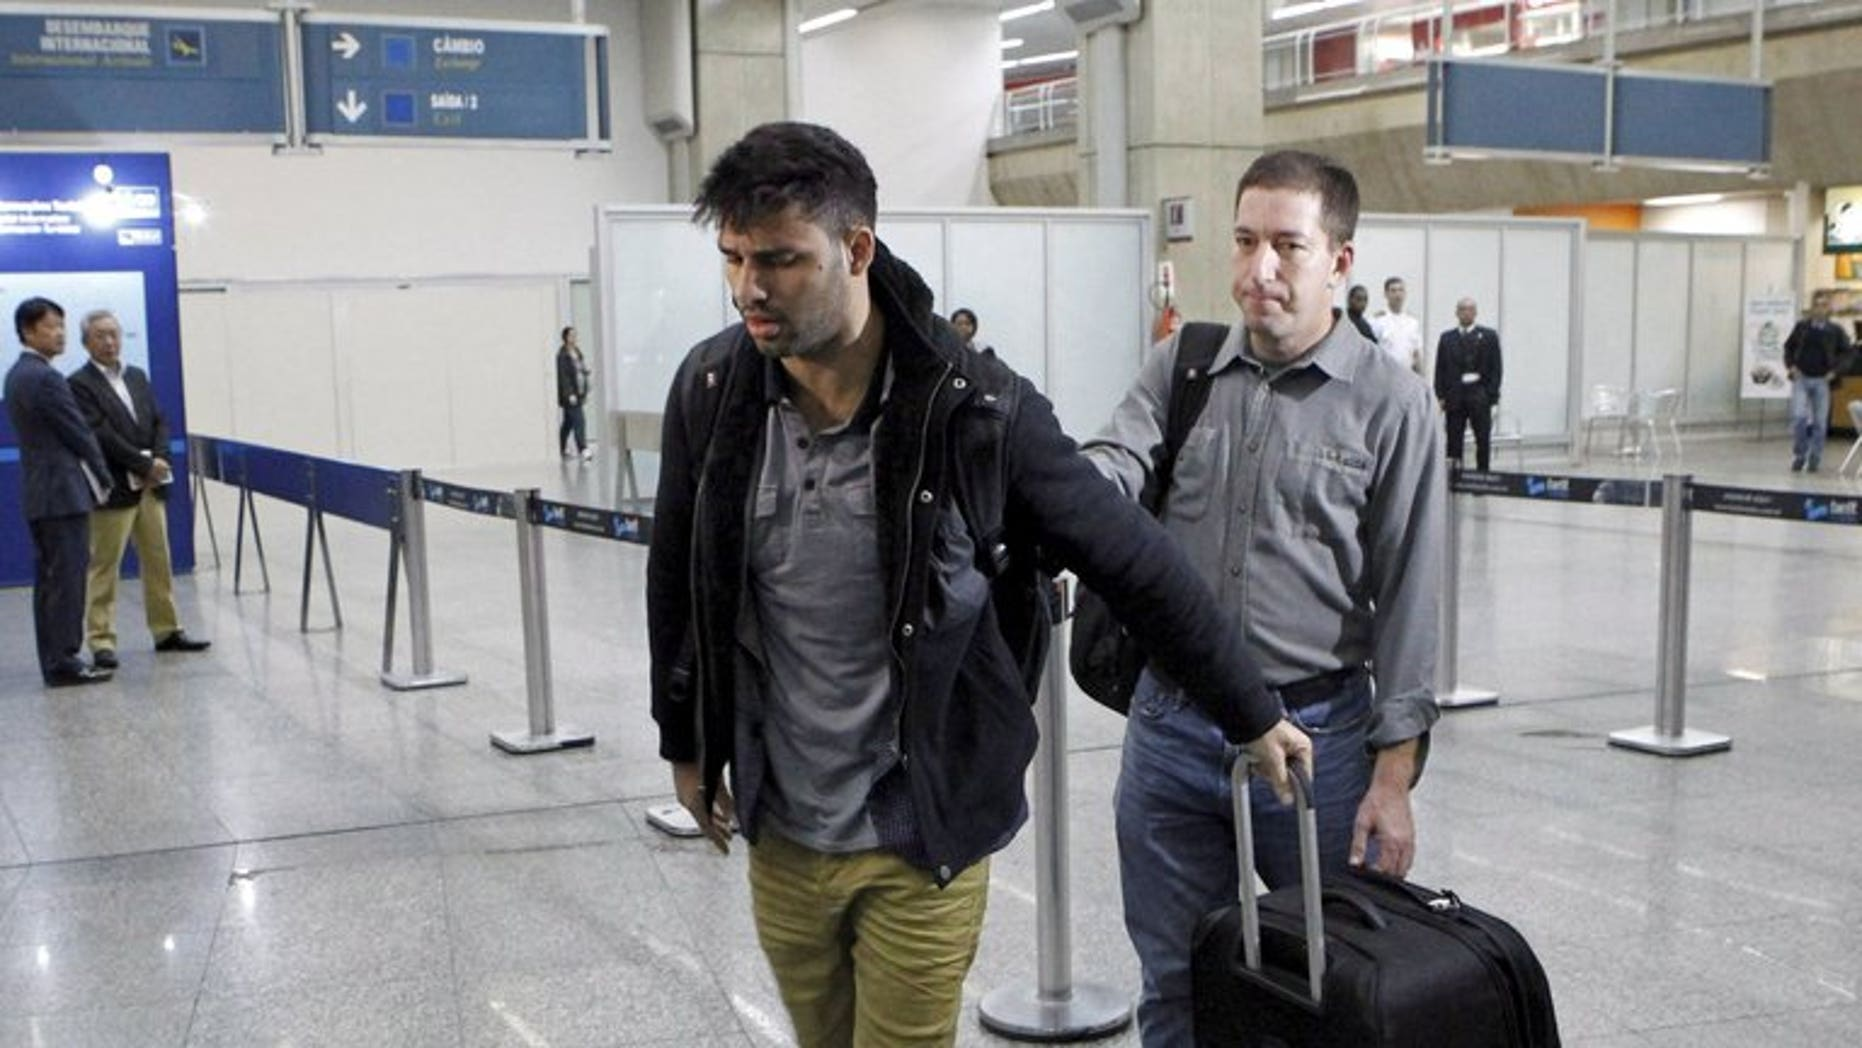 David Miranda (L), partner of Glenn Greenwald, is seen at Rio de Janeiro's Tom Jobim international airport on August 19, 2013.